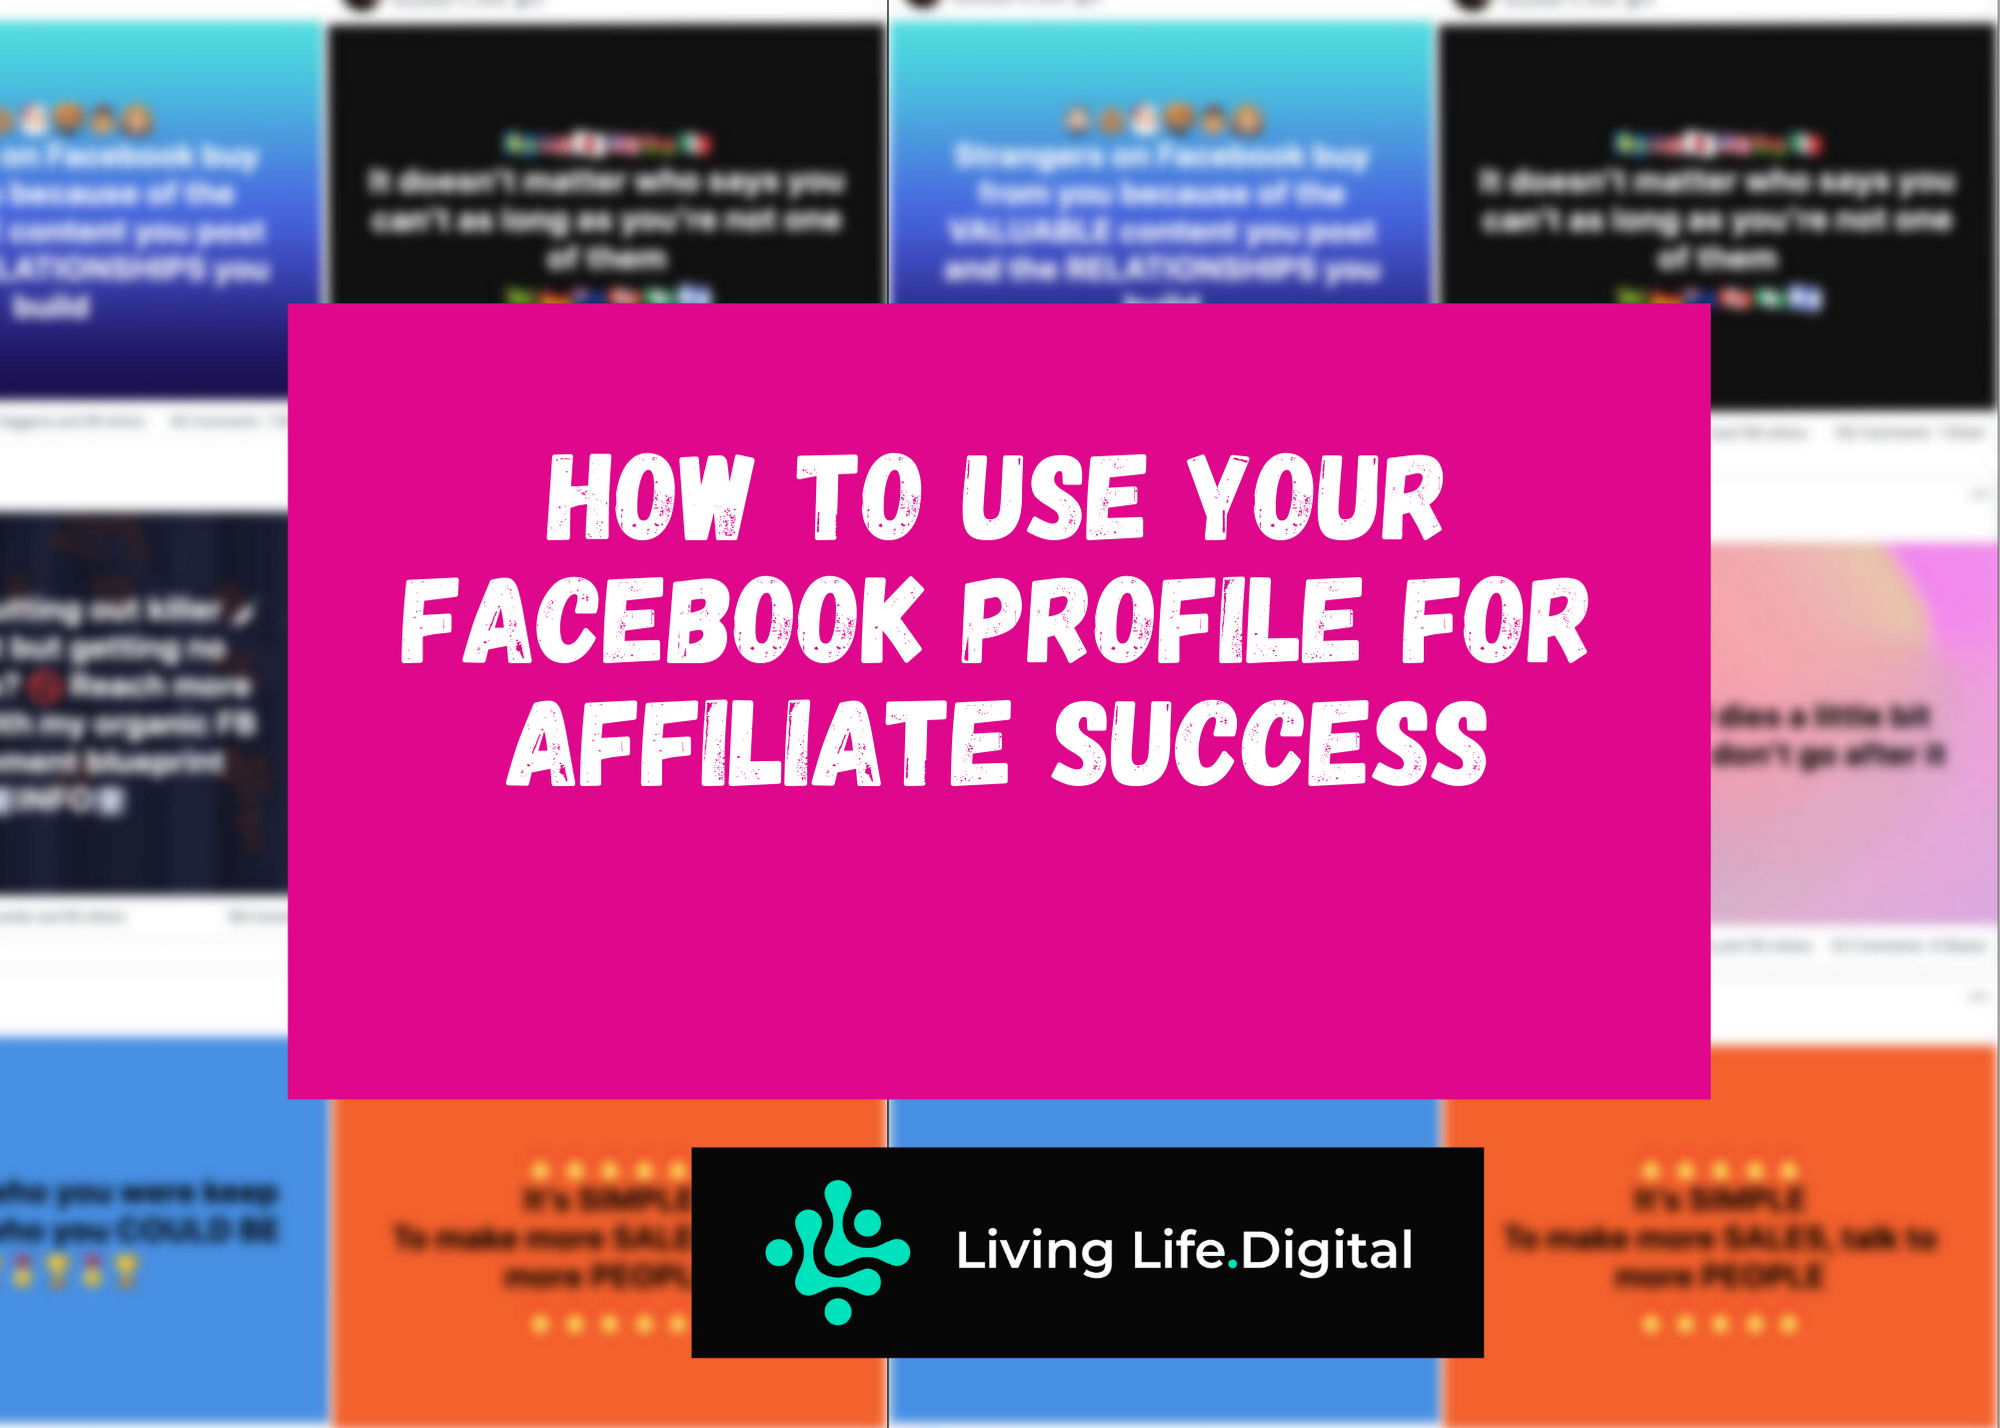 How To Use Your Facebook Profile for Affiliate Success